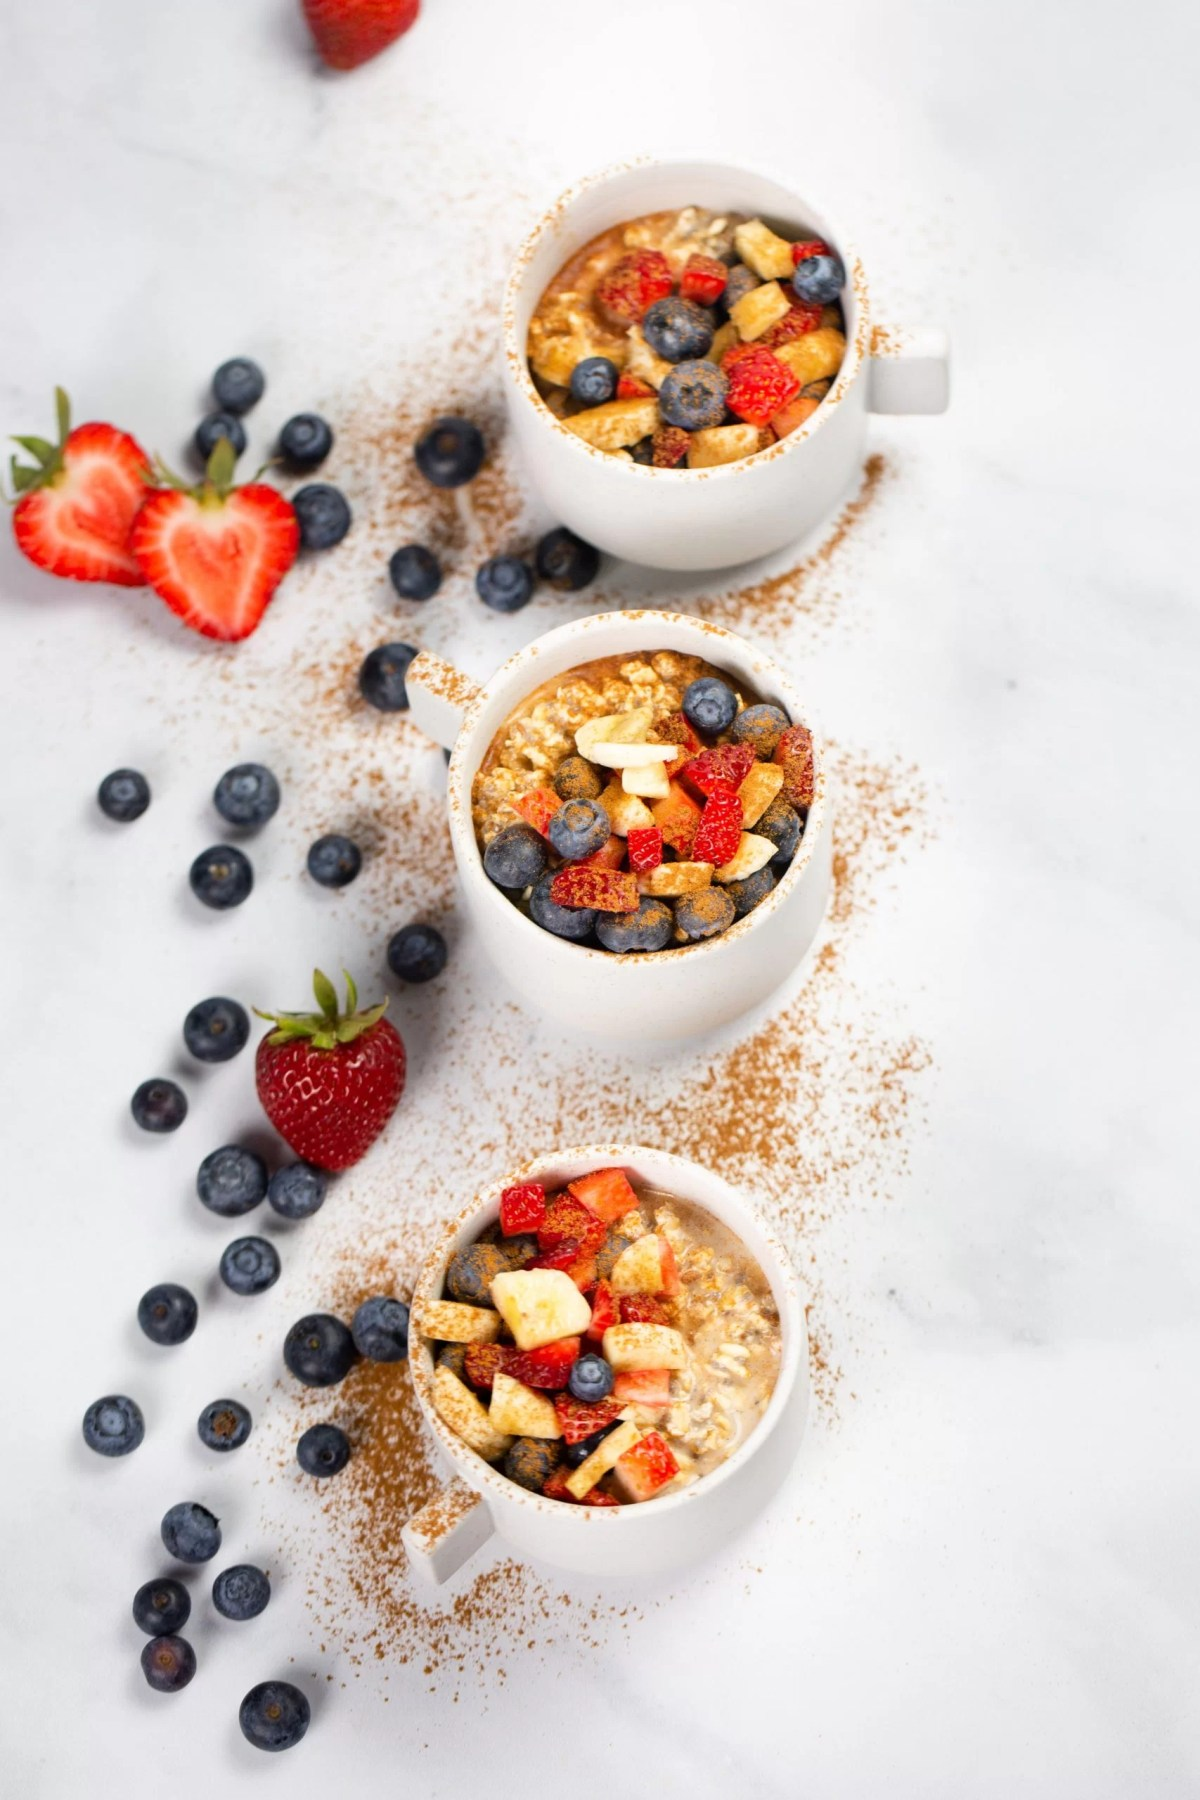 vegan oats for breakfast served with banana and berries.